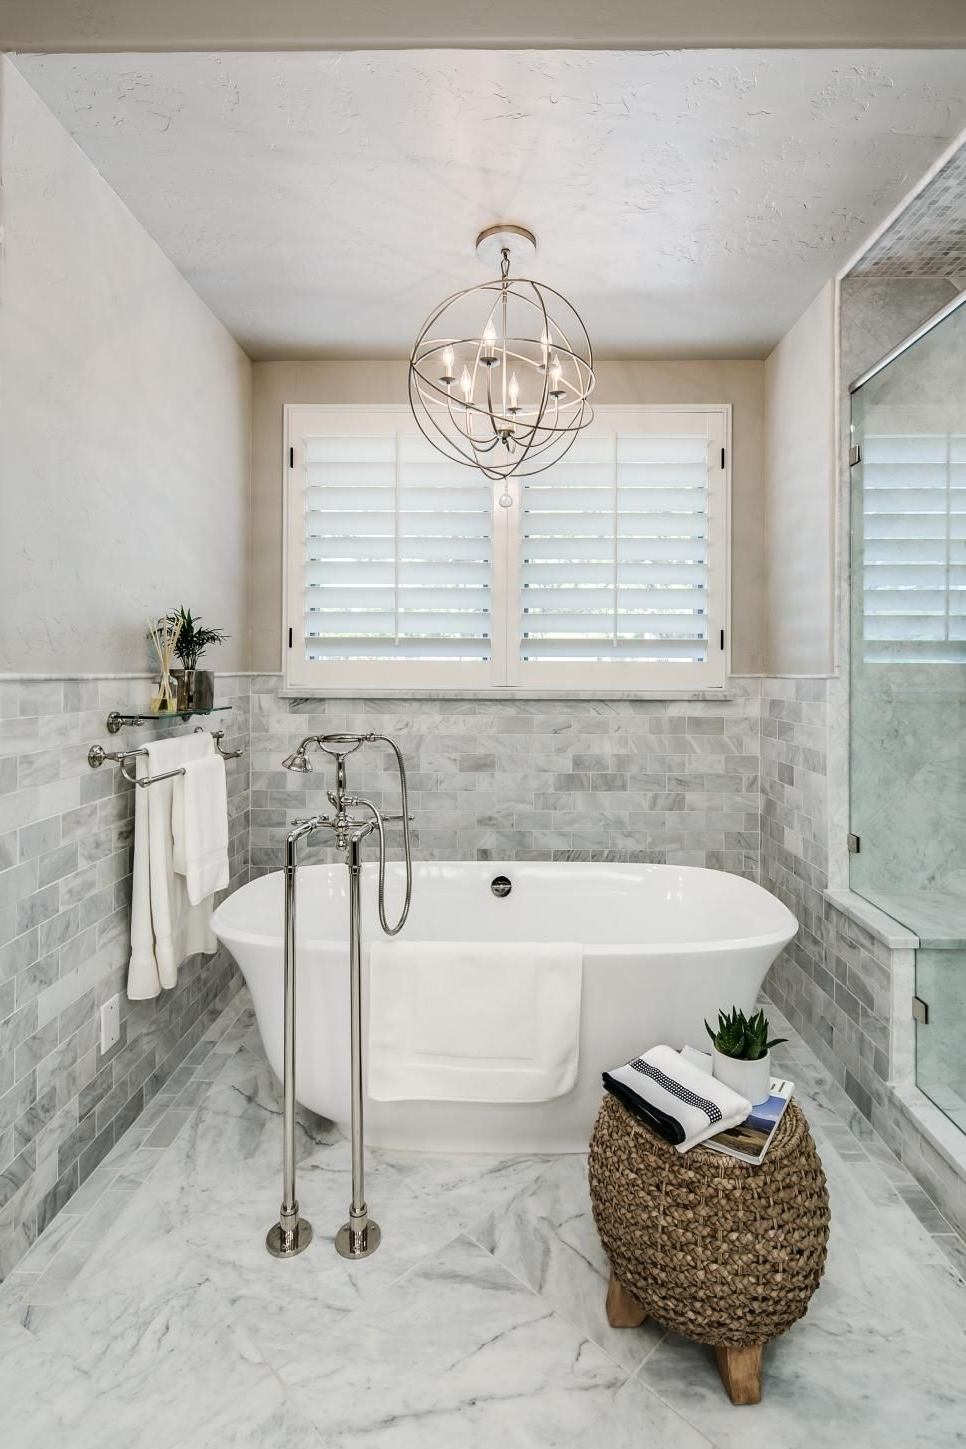 Newest A Metal Orb Chandelier Is Centered Above The Freestanding Tub In Inside Wall Mounted Bathroom Chandeliers (View 6 of 20)